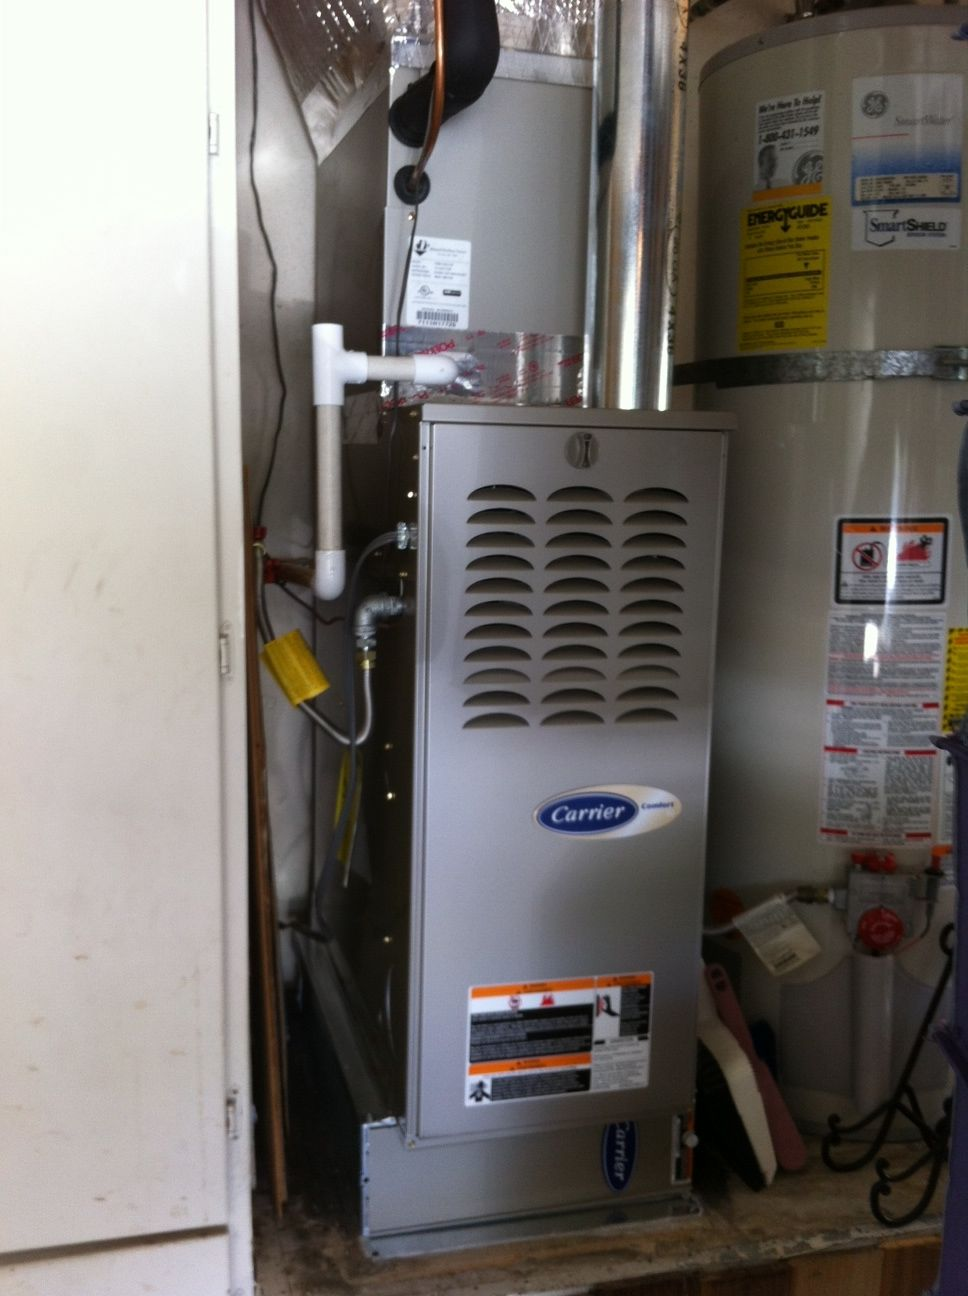 This Carrier furnace was installed in garage, vertical